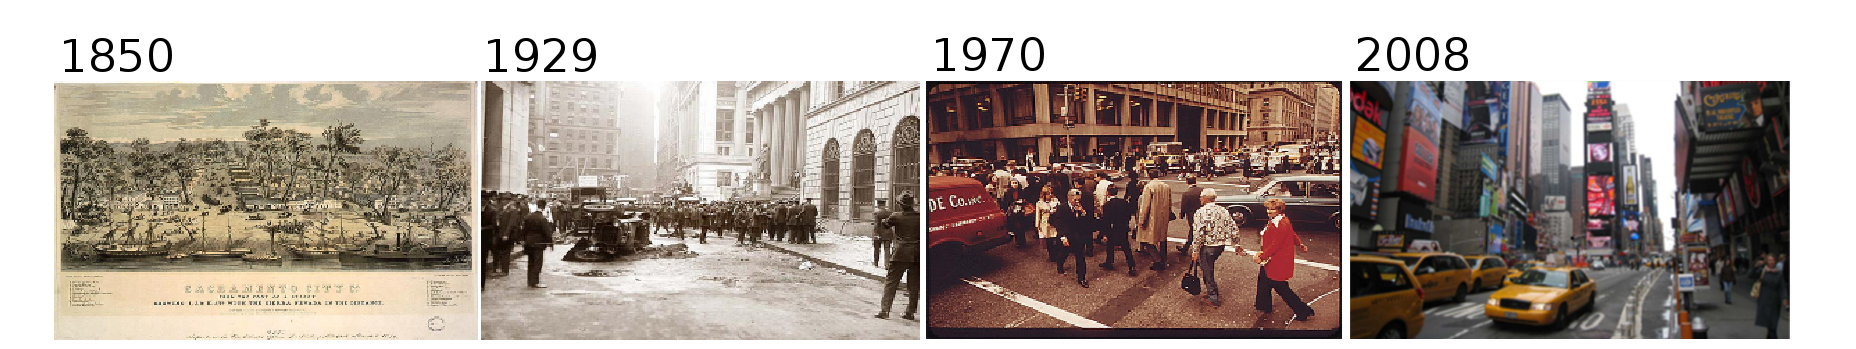 Views of New York in 1850, 1929, 1970 and 2008